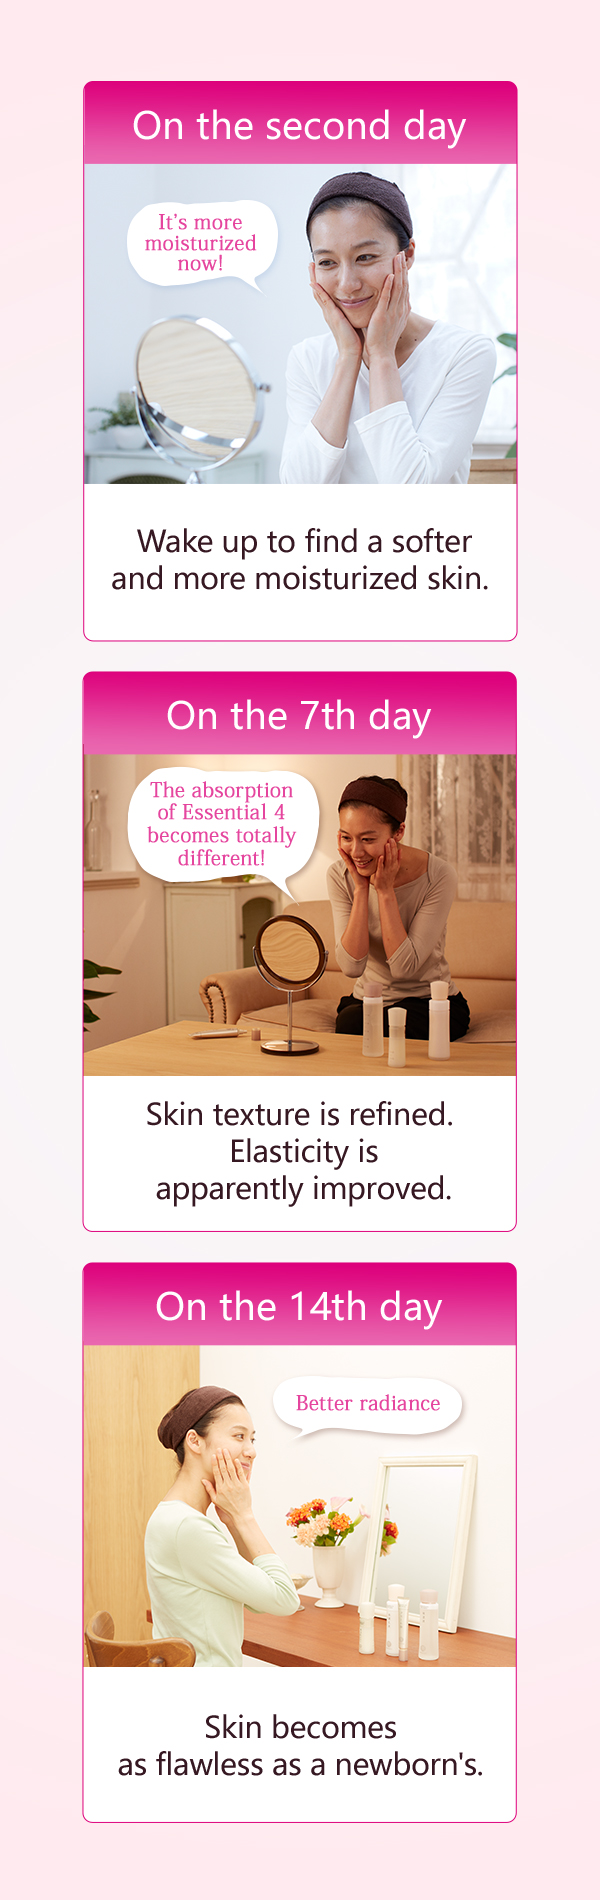 On the second day Wake up to find a softer and more moisturized skin. On the 7th day Skin texture is refined. Elasticity is apparently improved. On the 14th day Skin becomes as flawless as a newborn's.